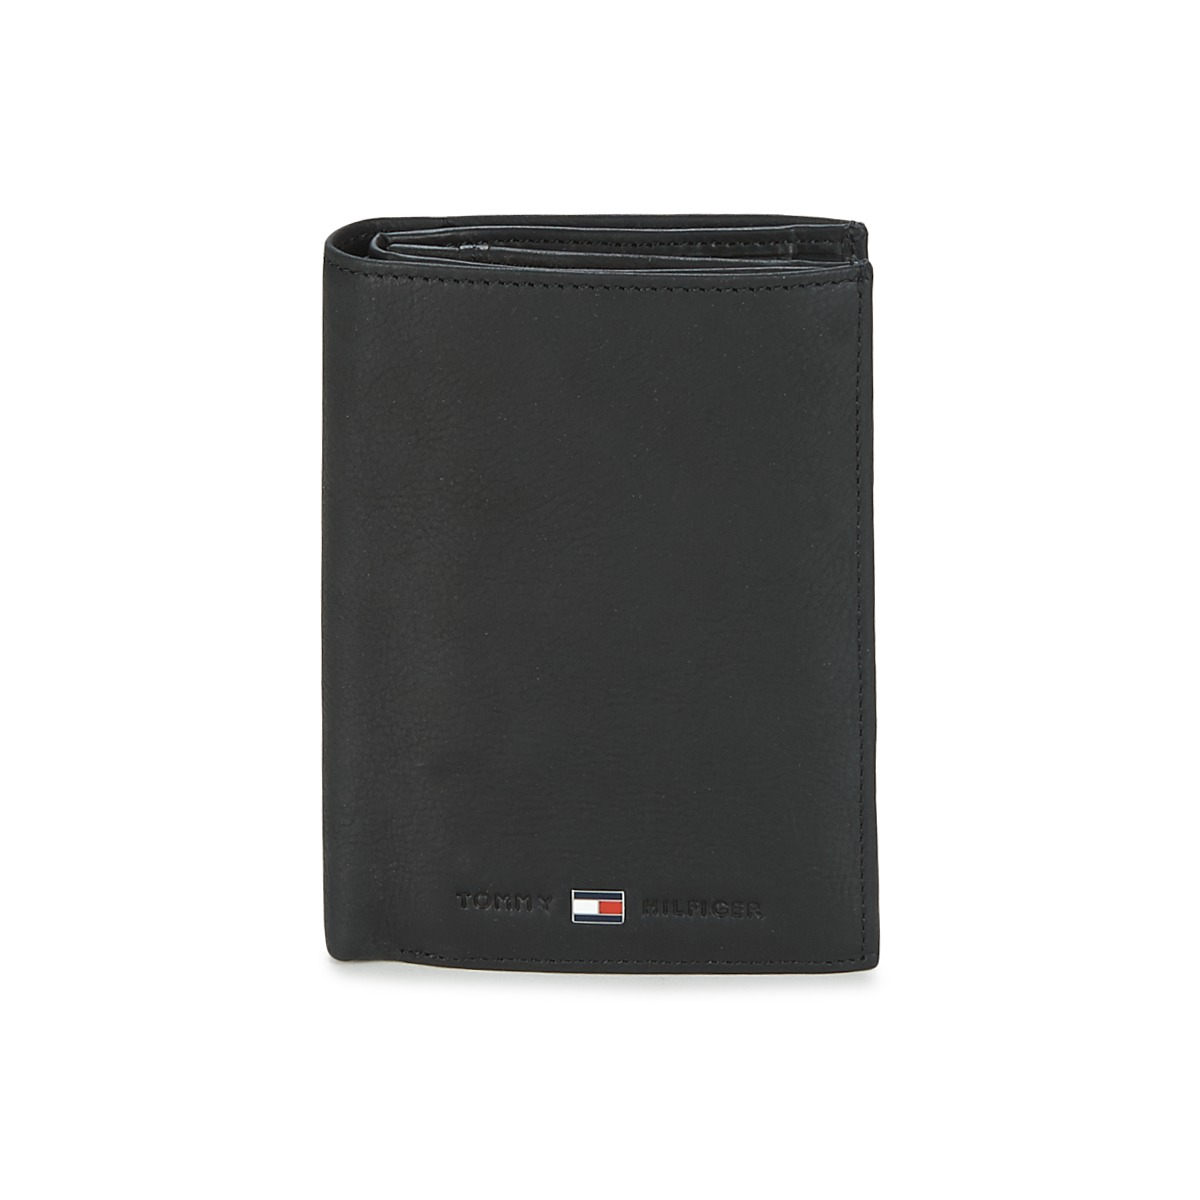 Preconcepción Doctrina moderadamente  Tommy Hilfiger JOHNSON N/S WALLET W/COIN POCKET Black - Free delivery |  Spartoo NET ! - Bags Wallets Men USD/$82.00